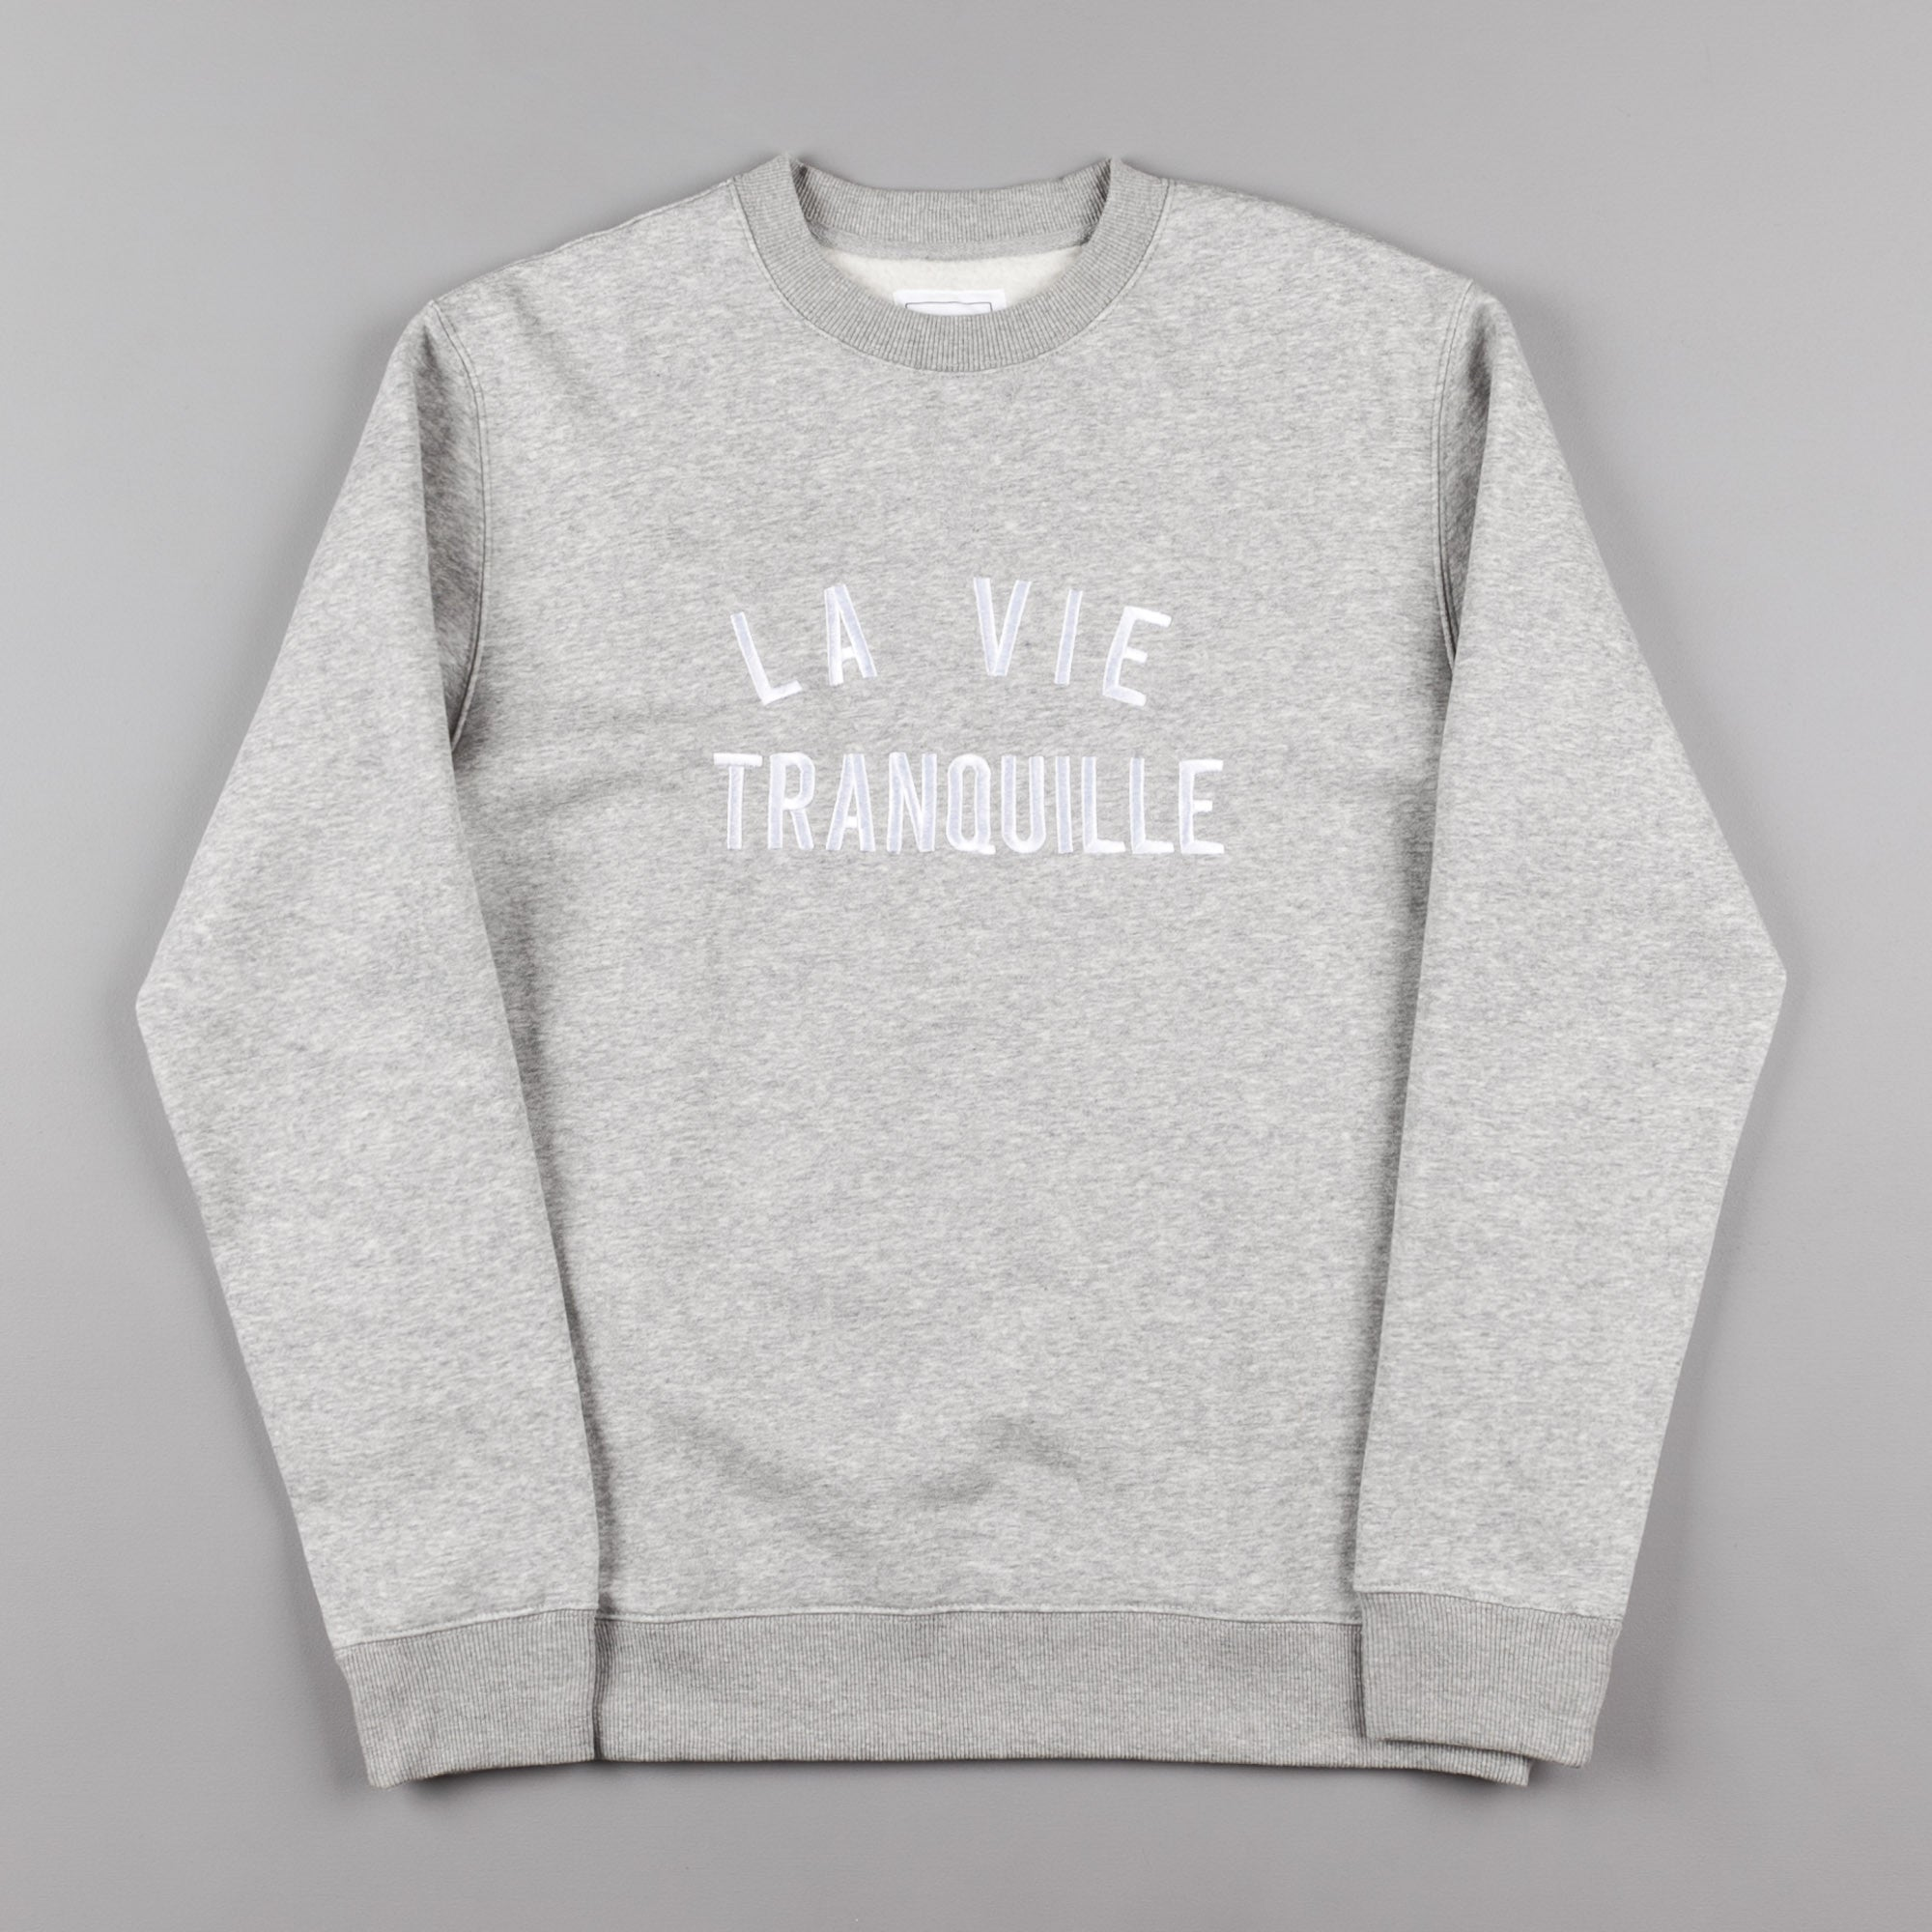 The Quiet Life La Vie Tranquille Crewneck Sweatshirt - Heather Grey